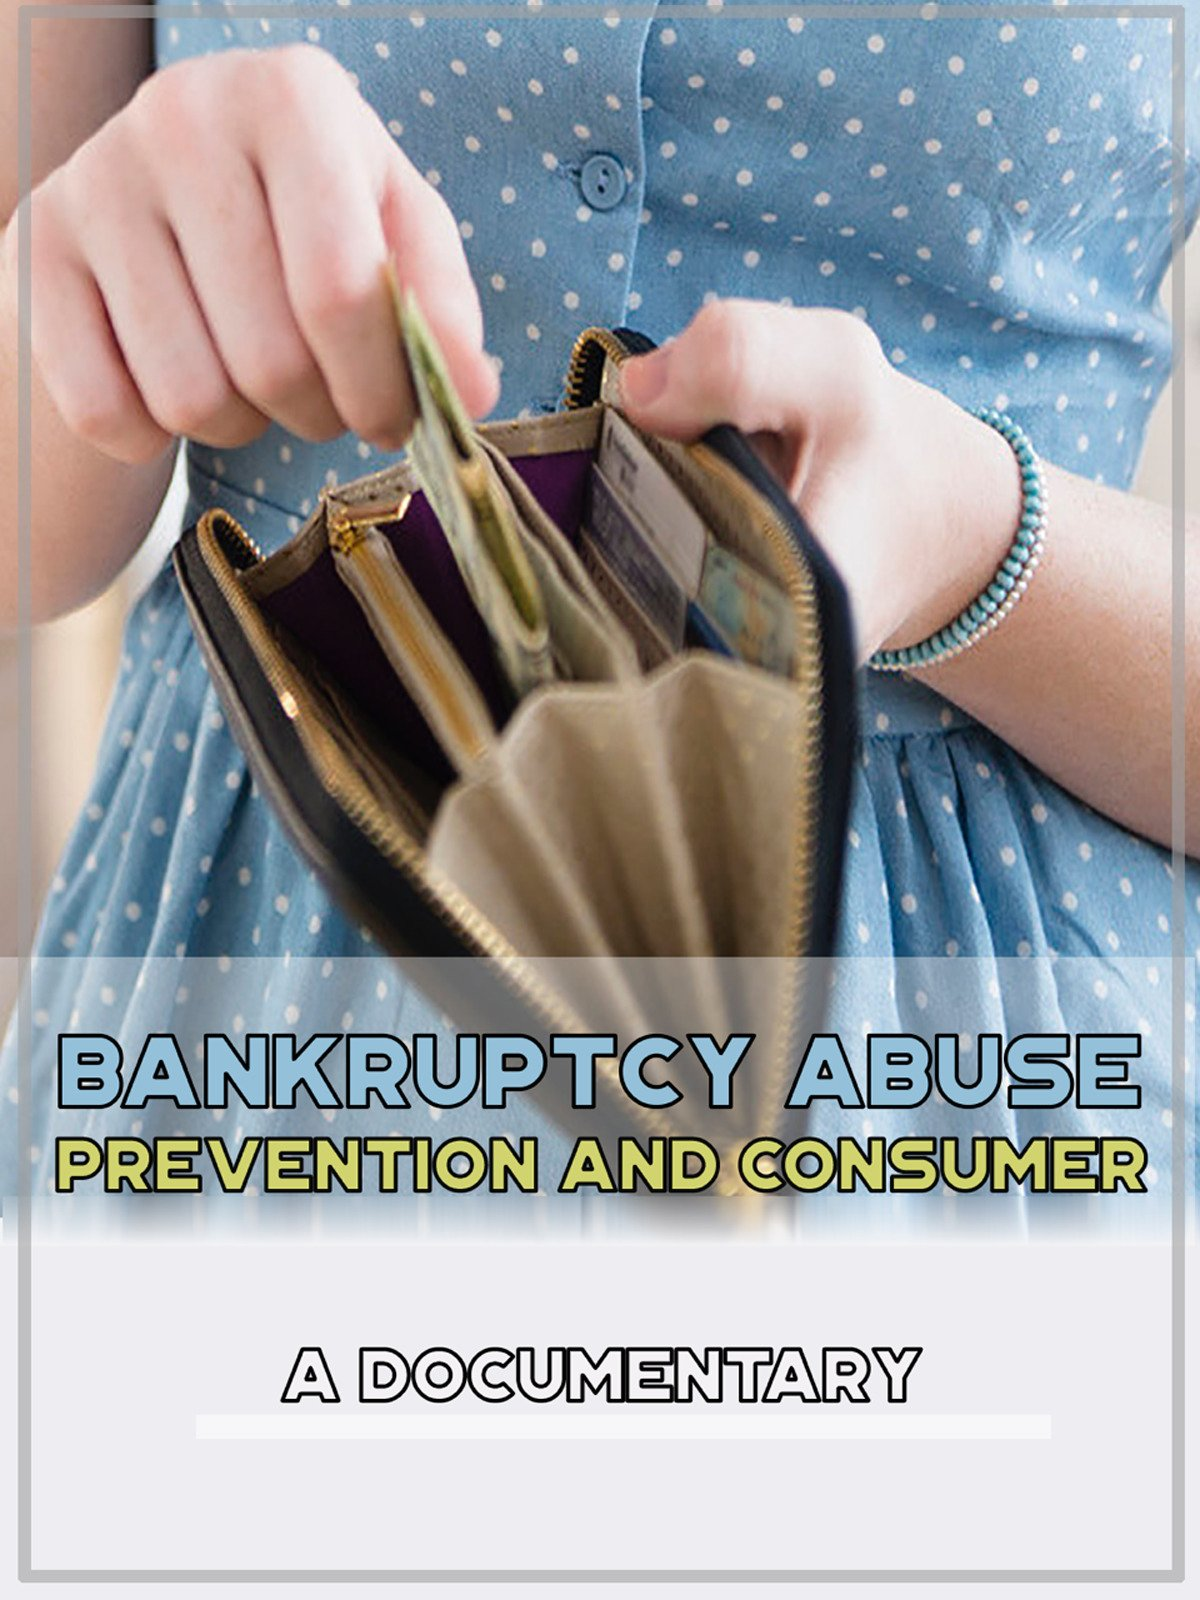 Bankruptcy Abuse Prevention and Consumer A Documentary